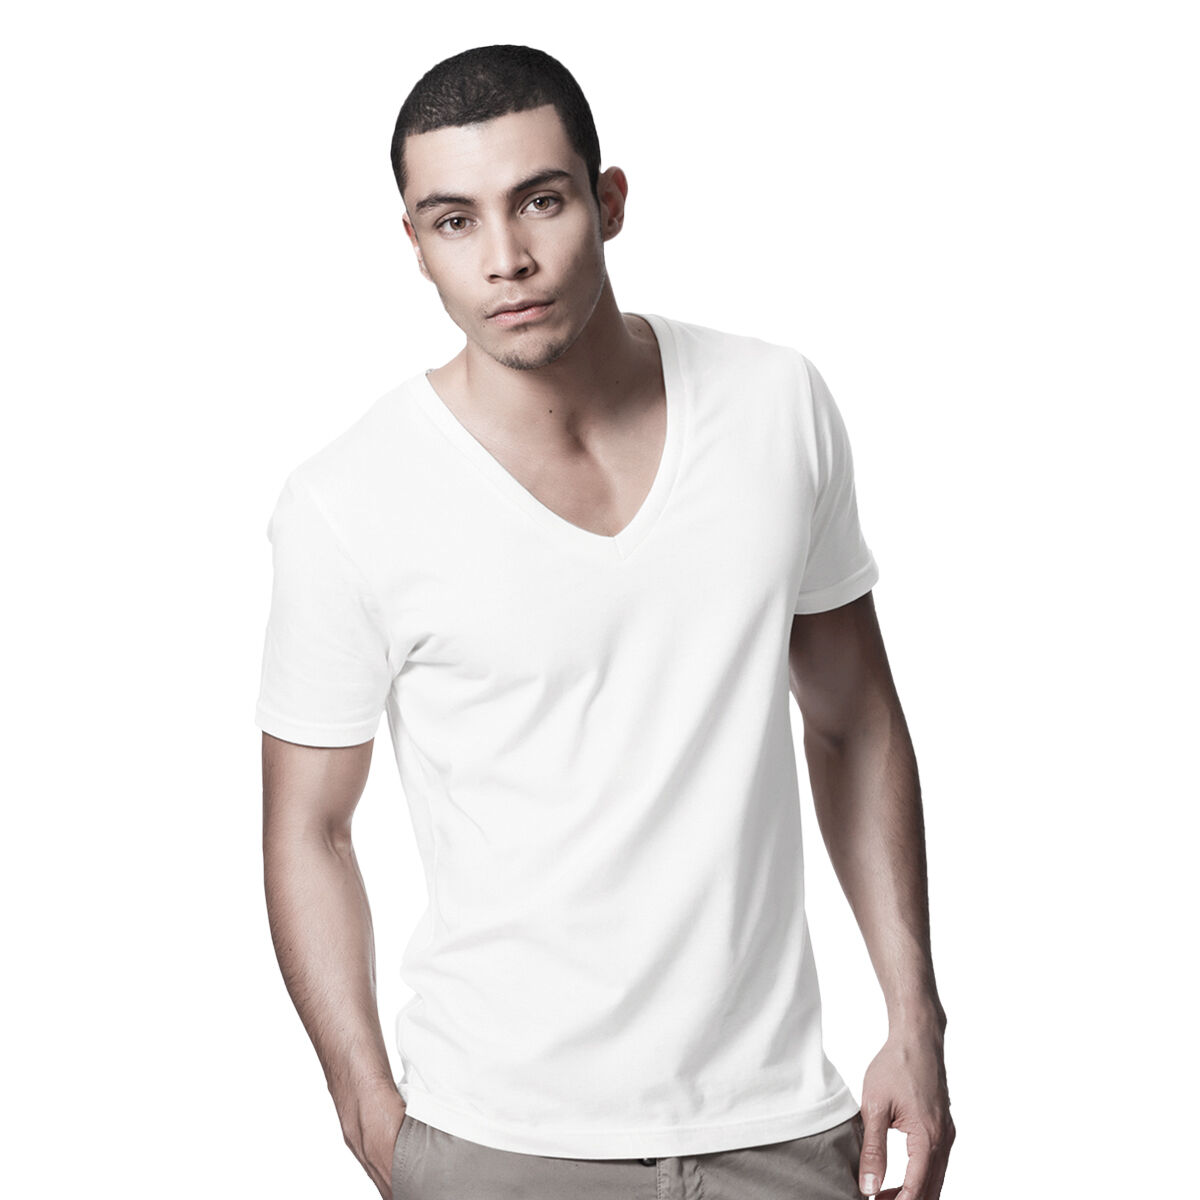 30052c58c3c5 Details about DANYEYI® Mens Plain Fitted Low Deep V Neck T-Shirt Top White  Or Black S-XL